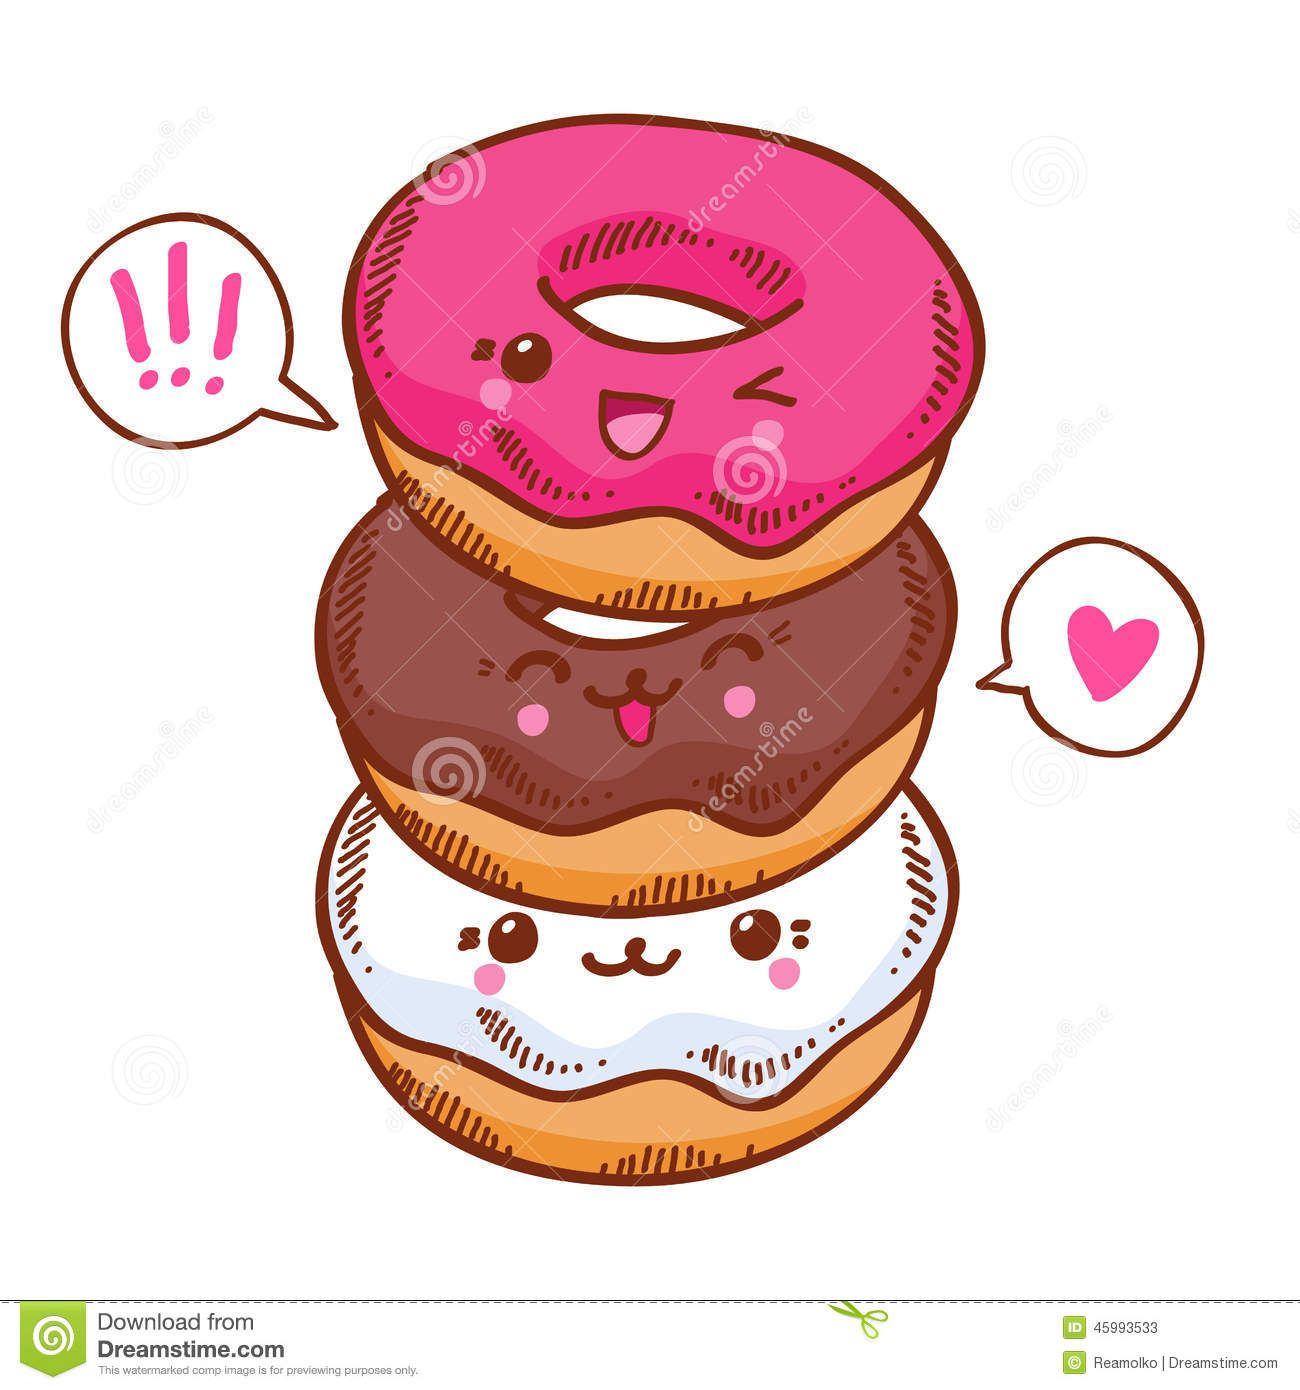 3 clipart donut. Group of three cute